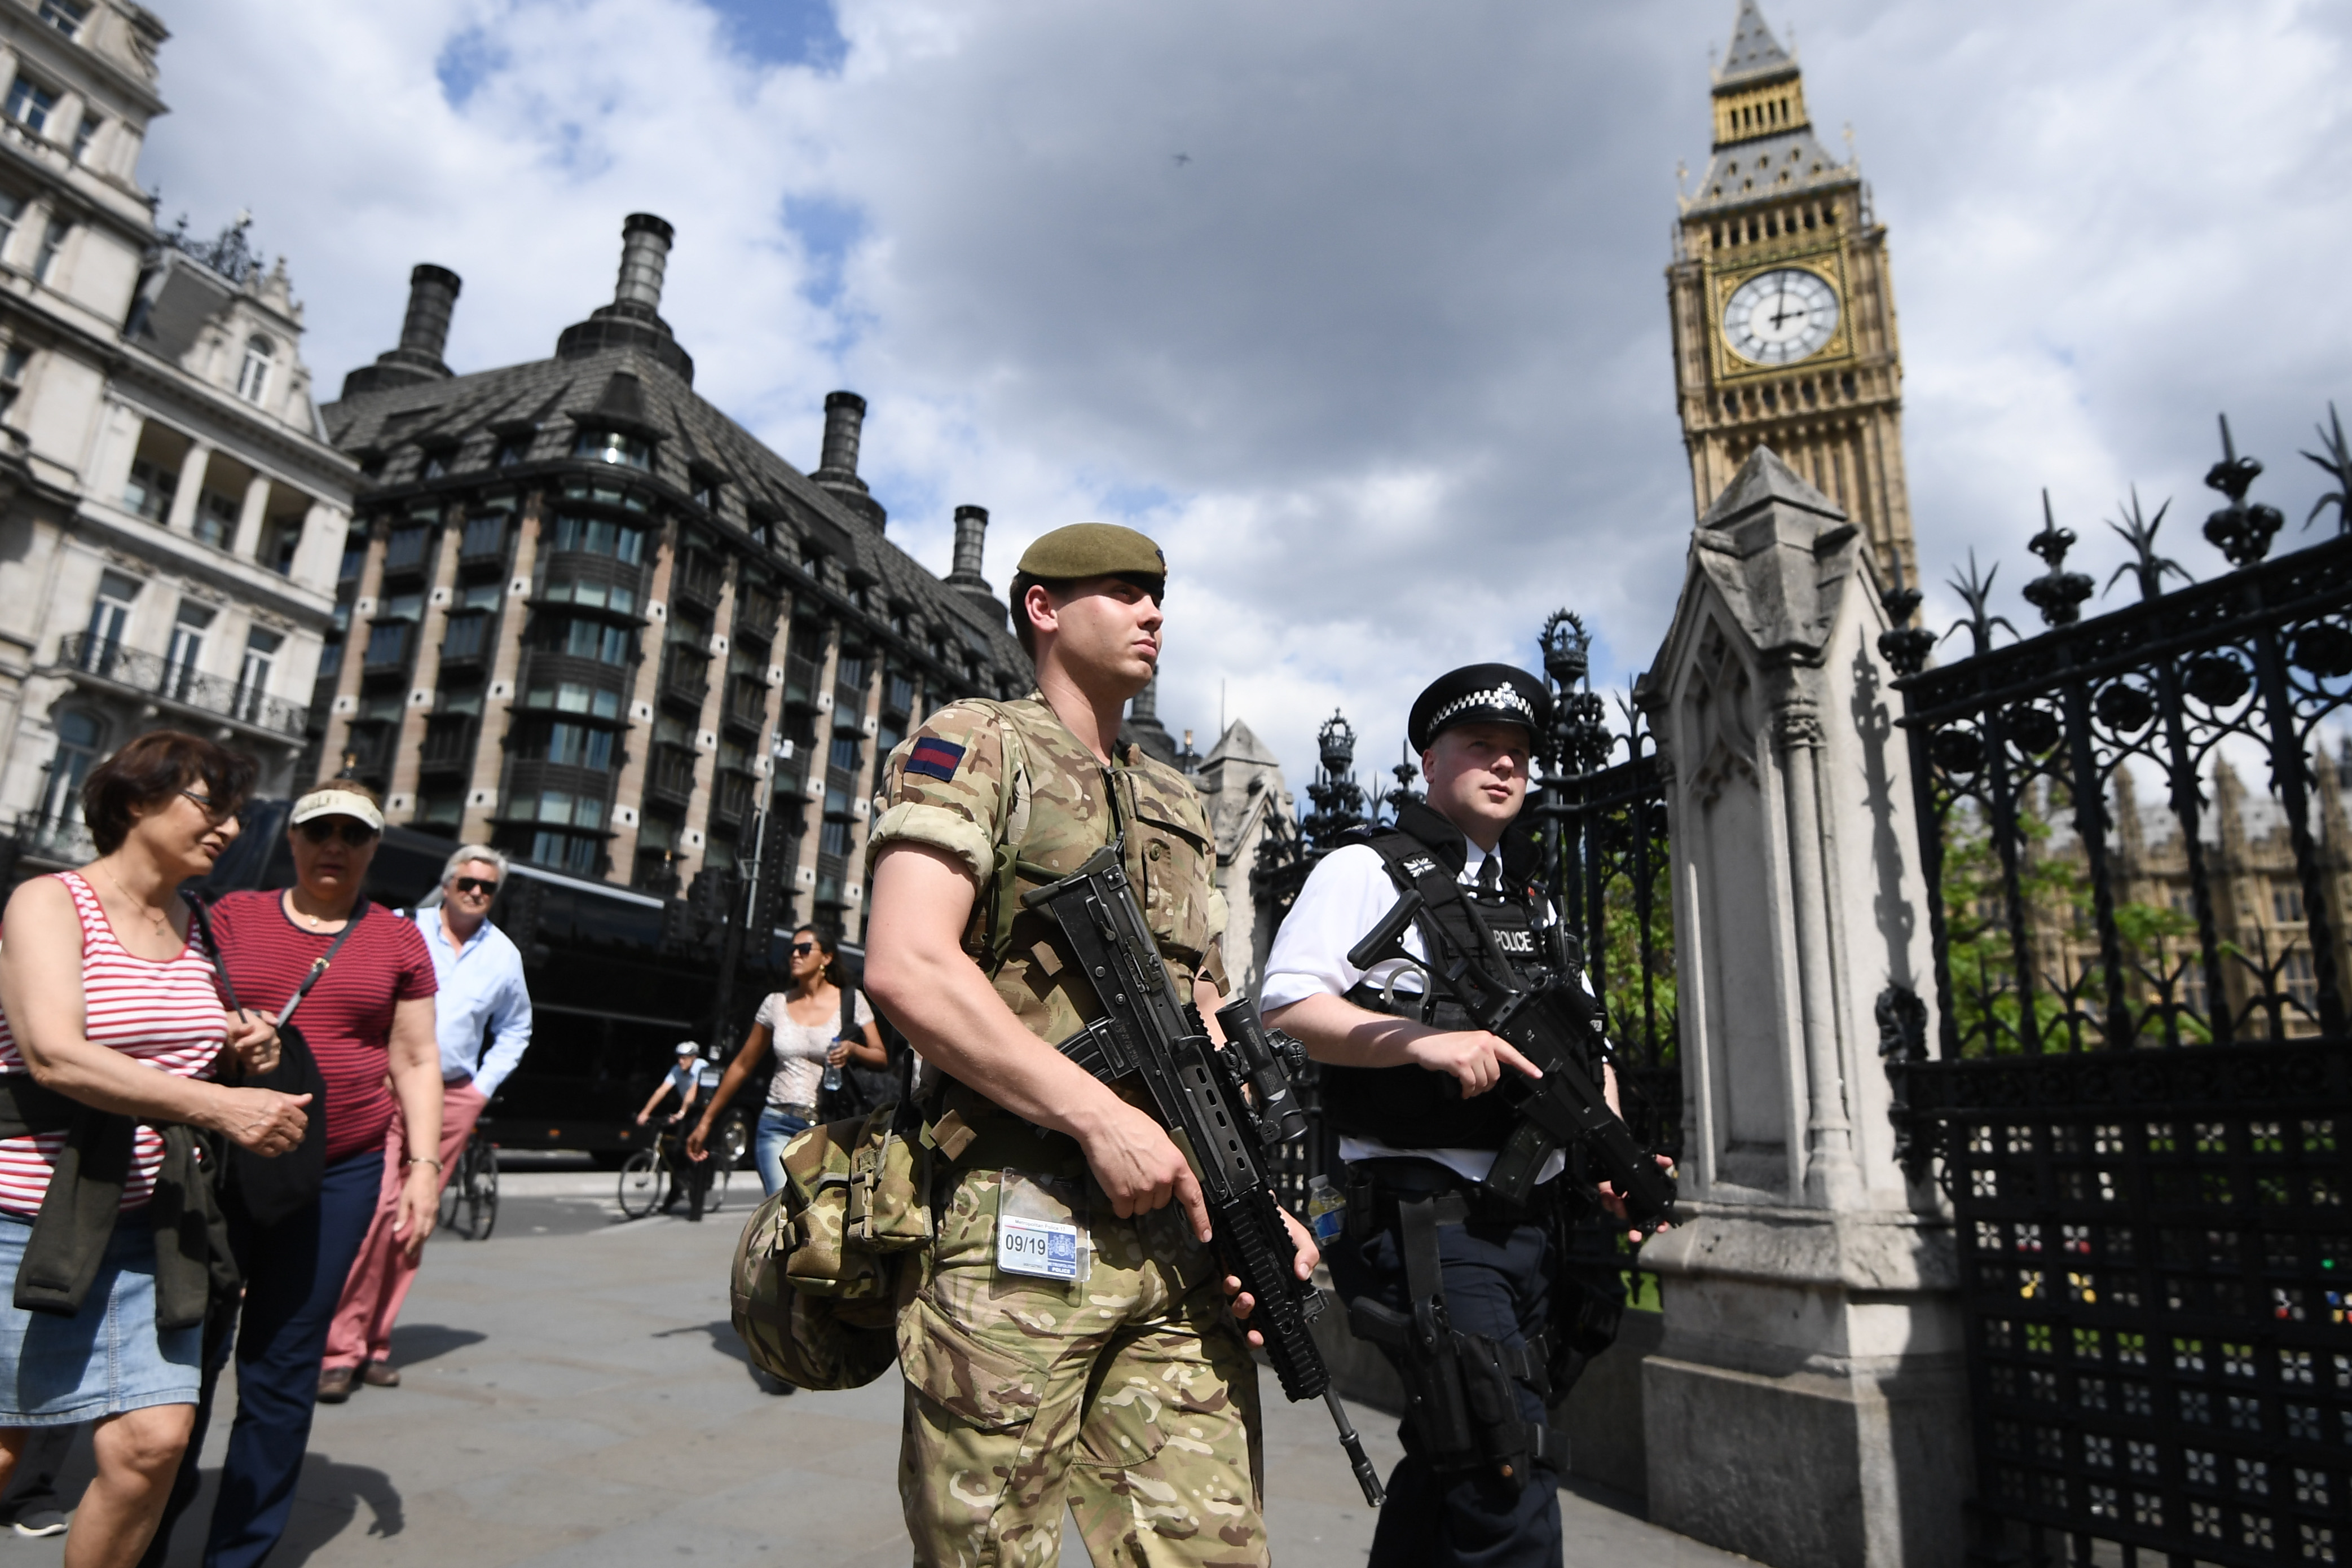 British Army Deployed On The Streets As UK Terror Alert Increases To Critical